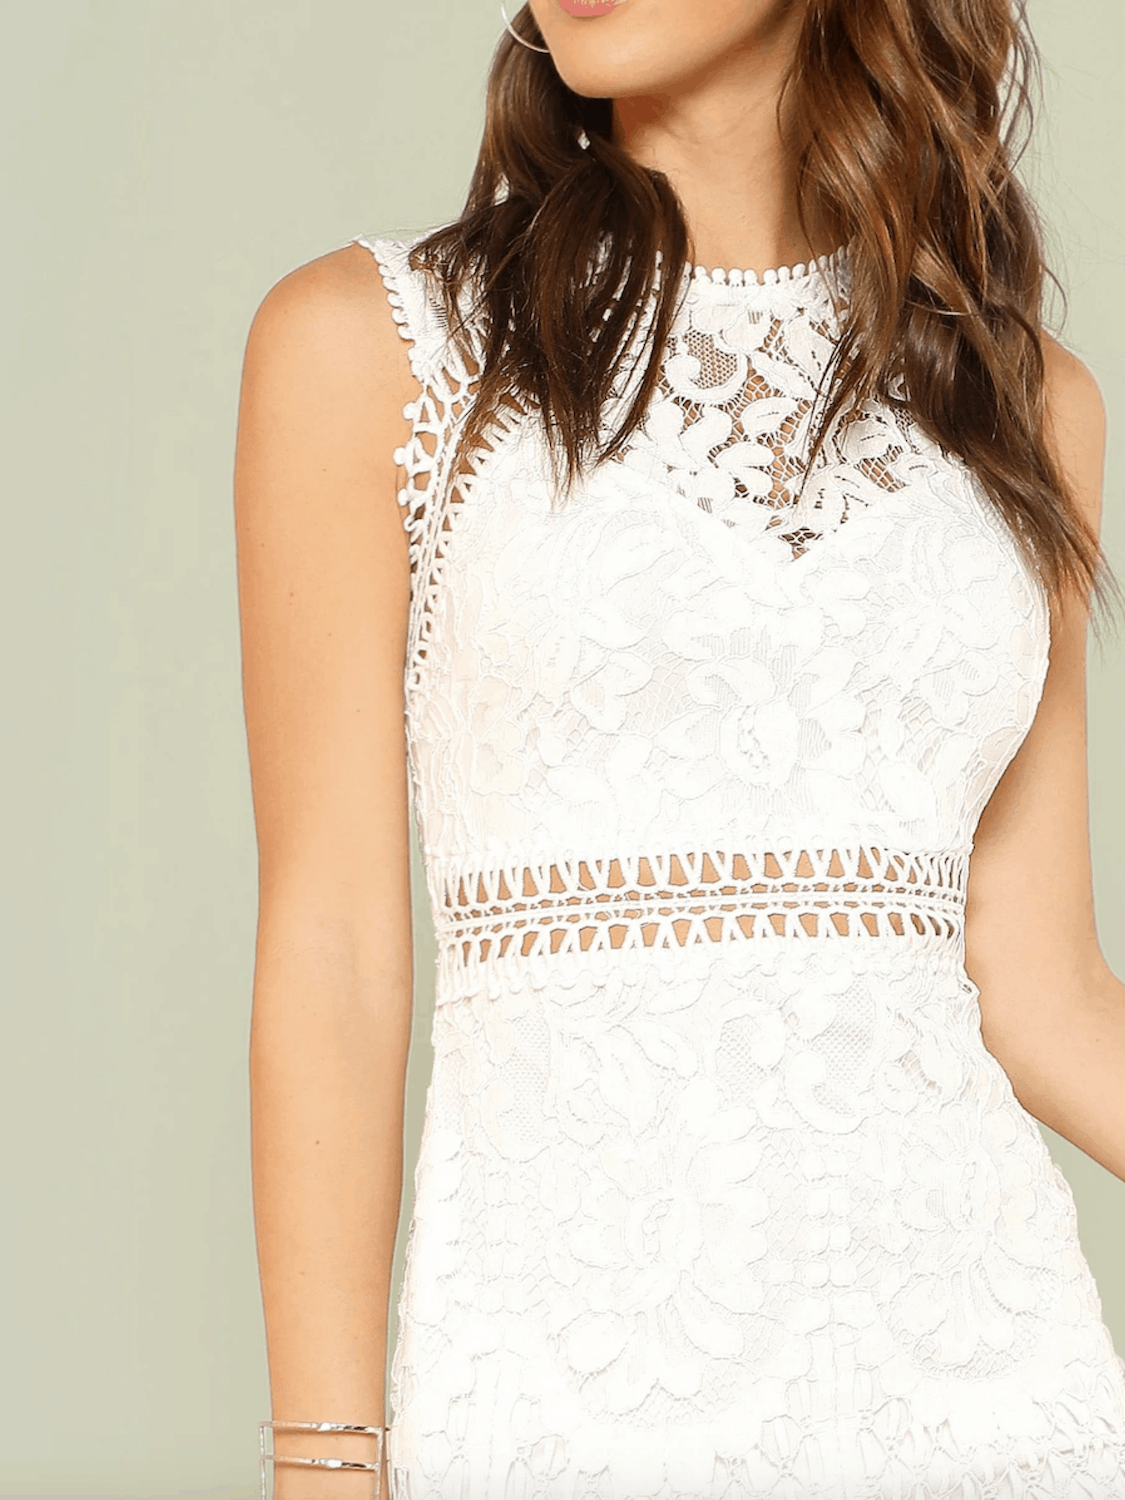 Bridal Shower Dresses for the Bride SHEIN Scalloped Hem Guipure Lace Bodycon Dress 3